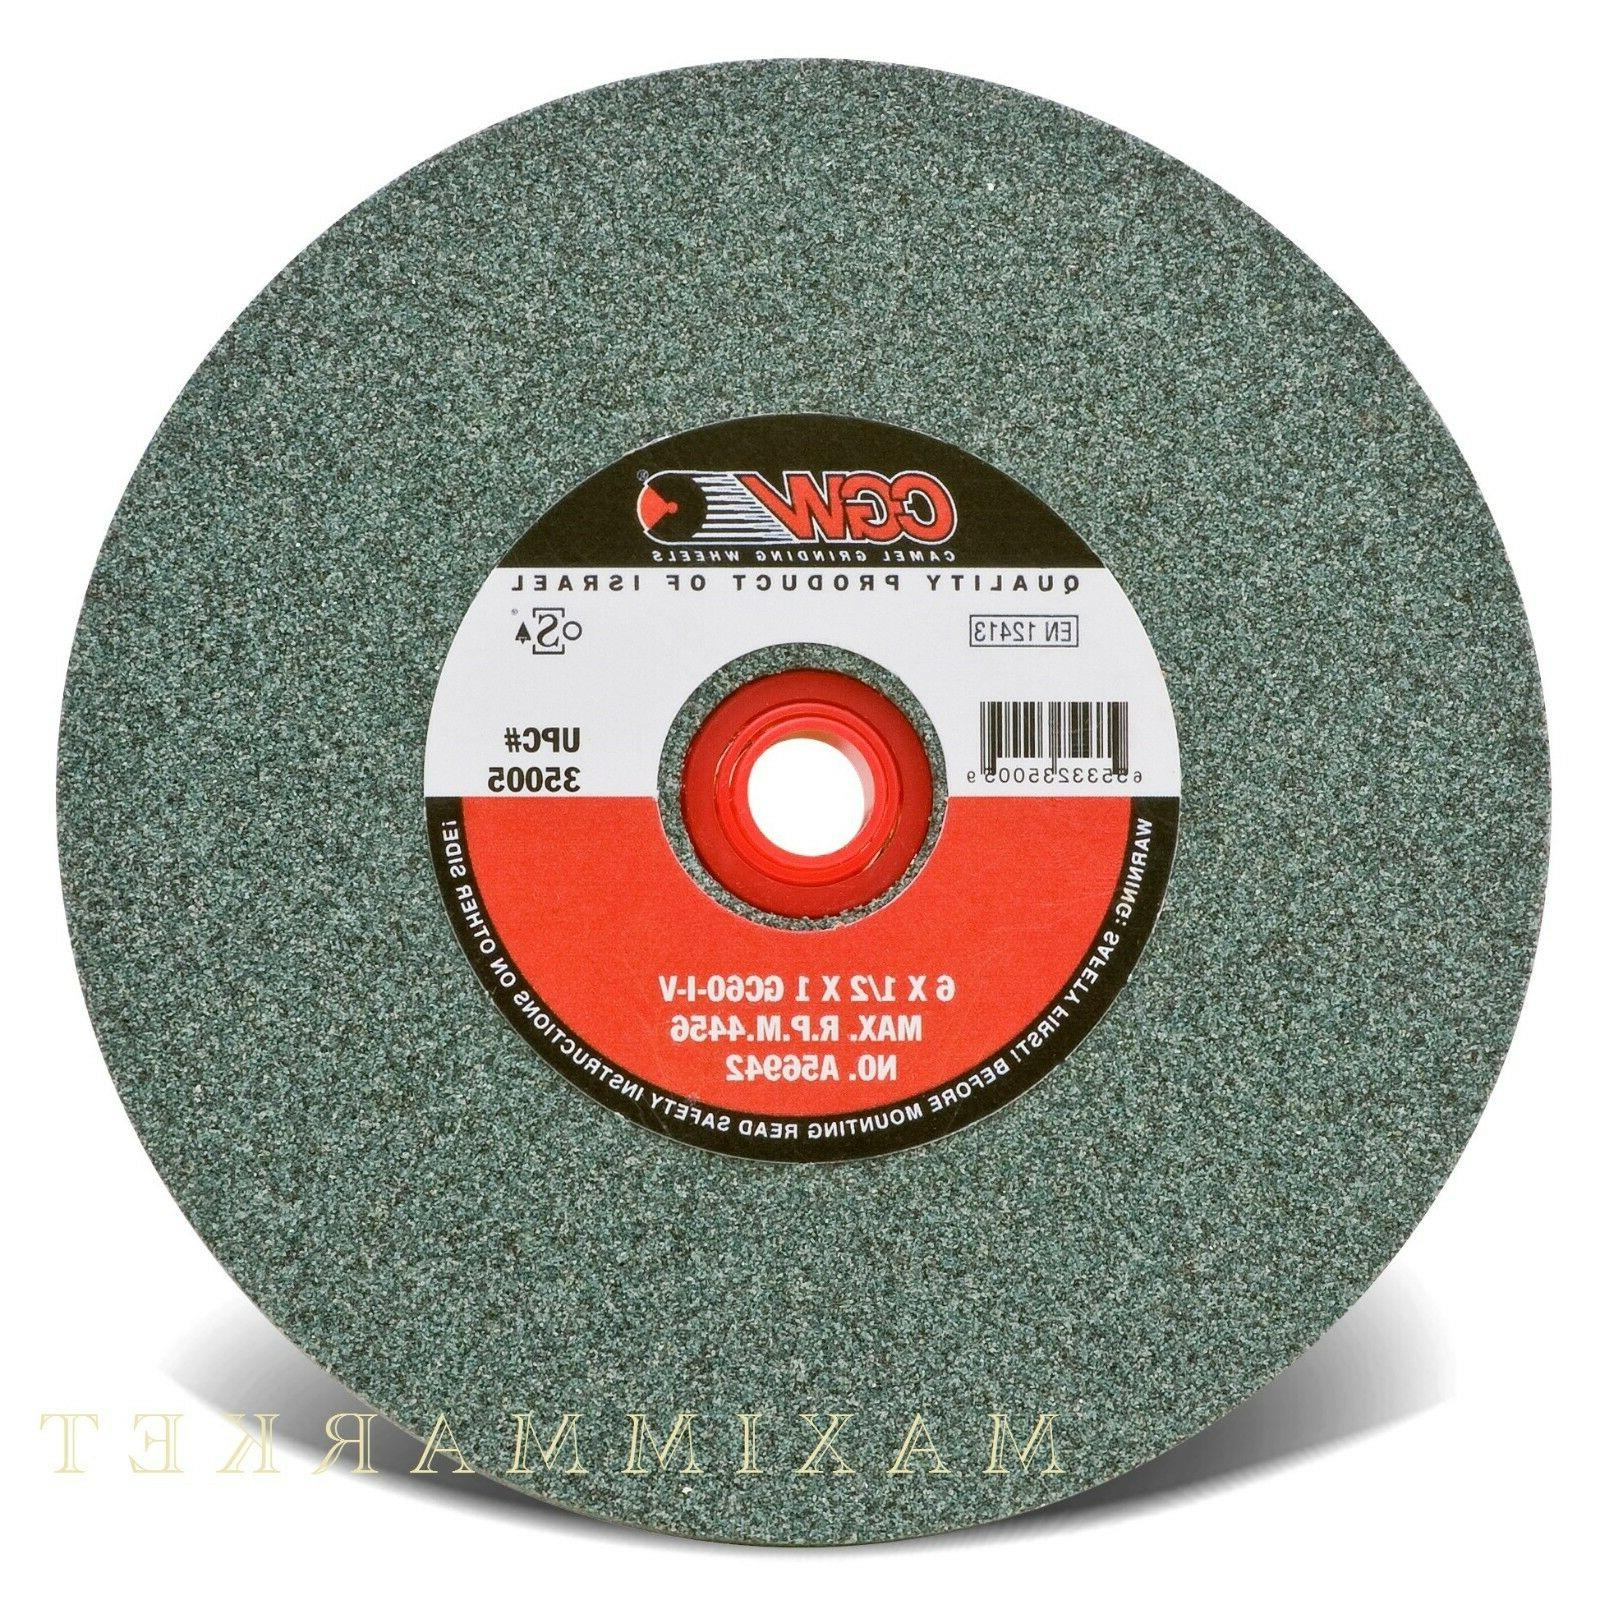 Bench Wheels, Green Silicon Carbide, Carton Pack - 6x1/2x1 g